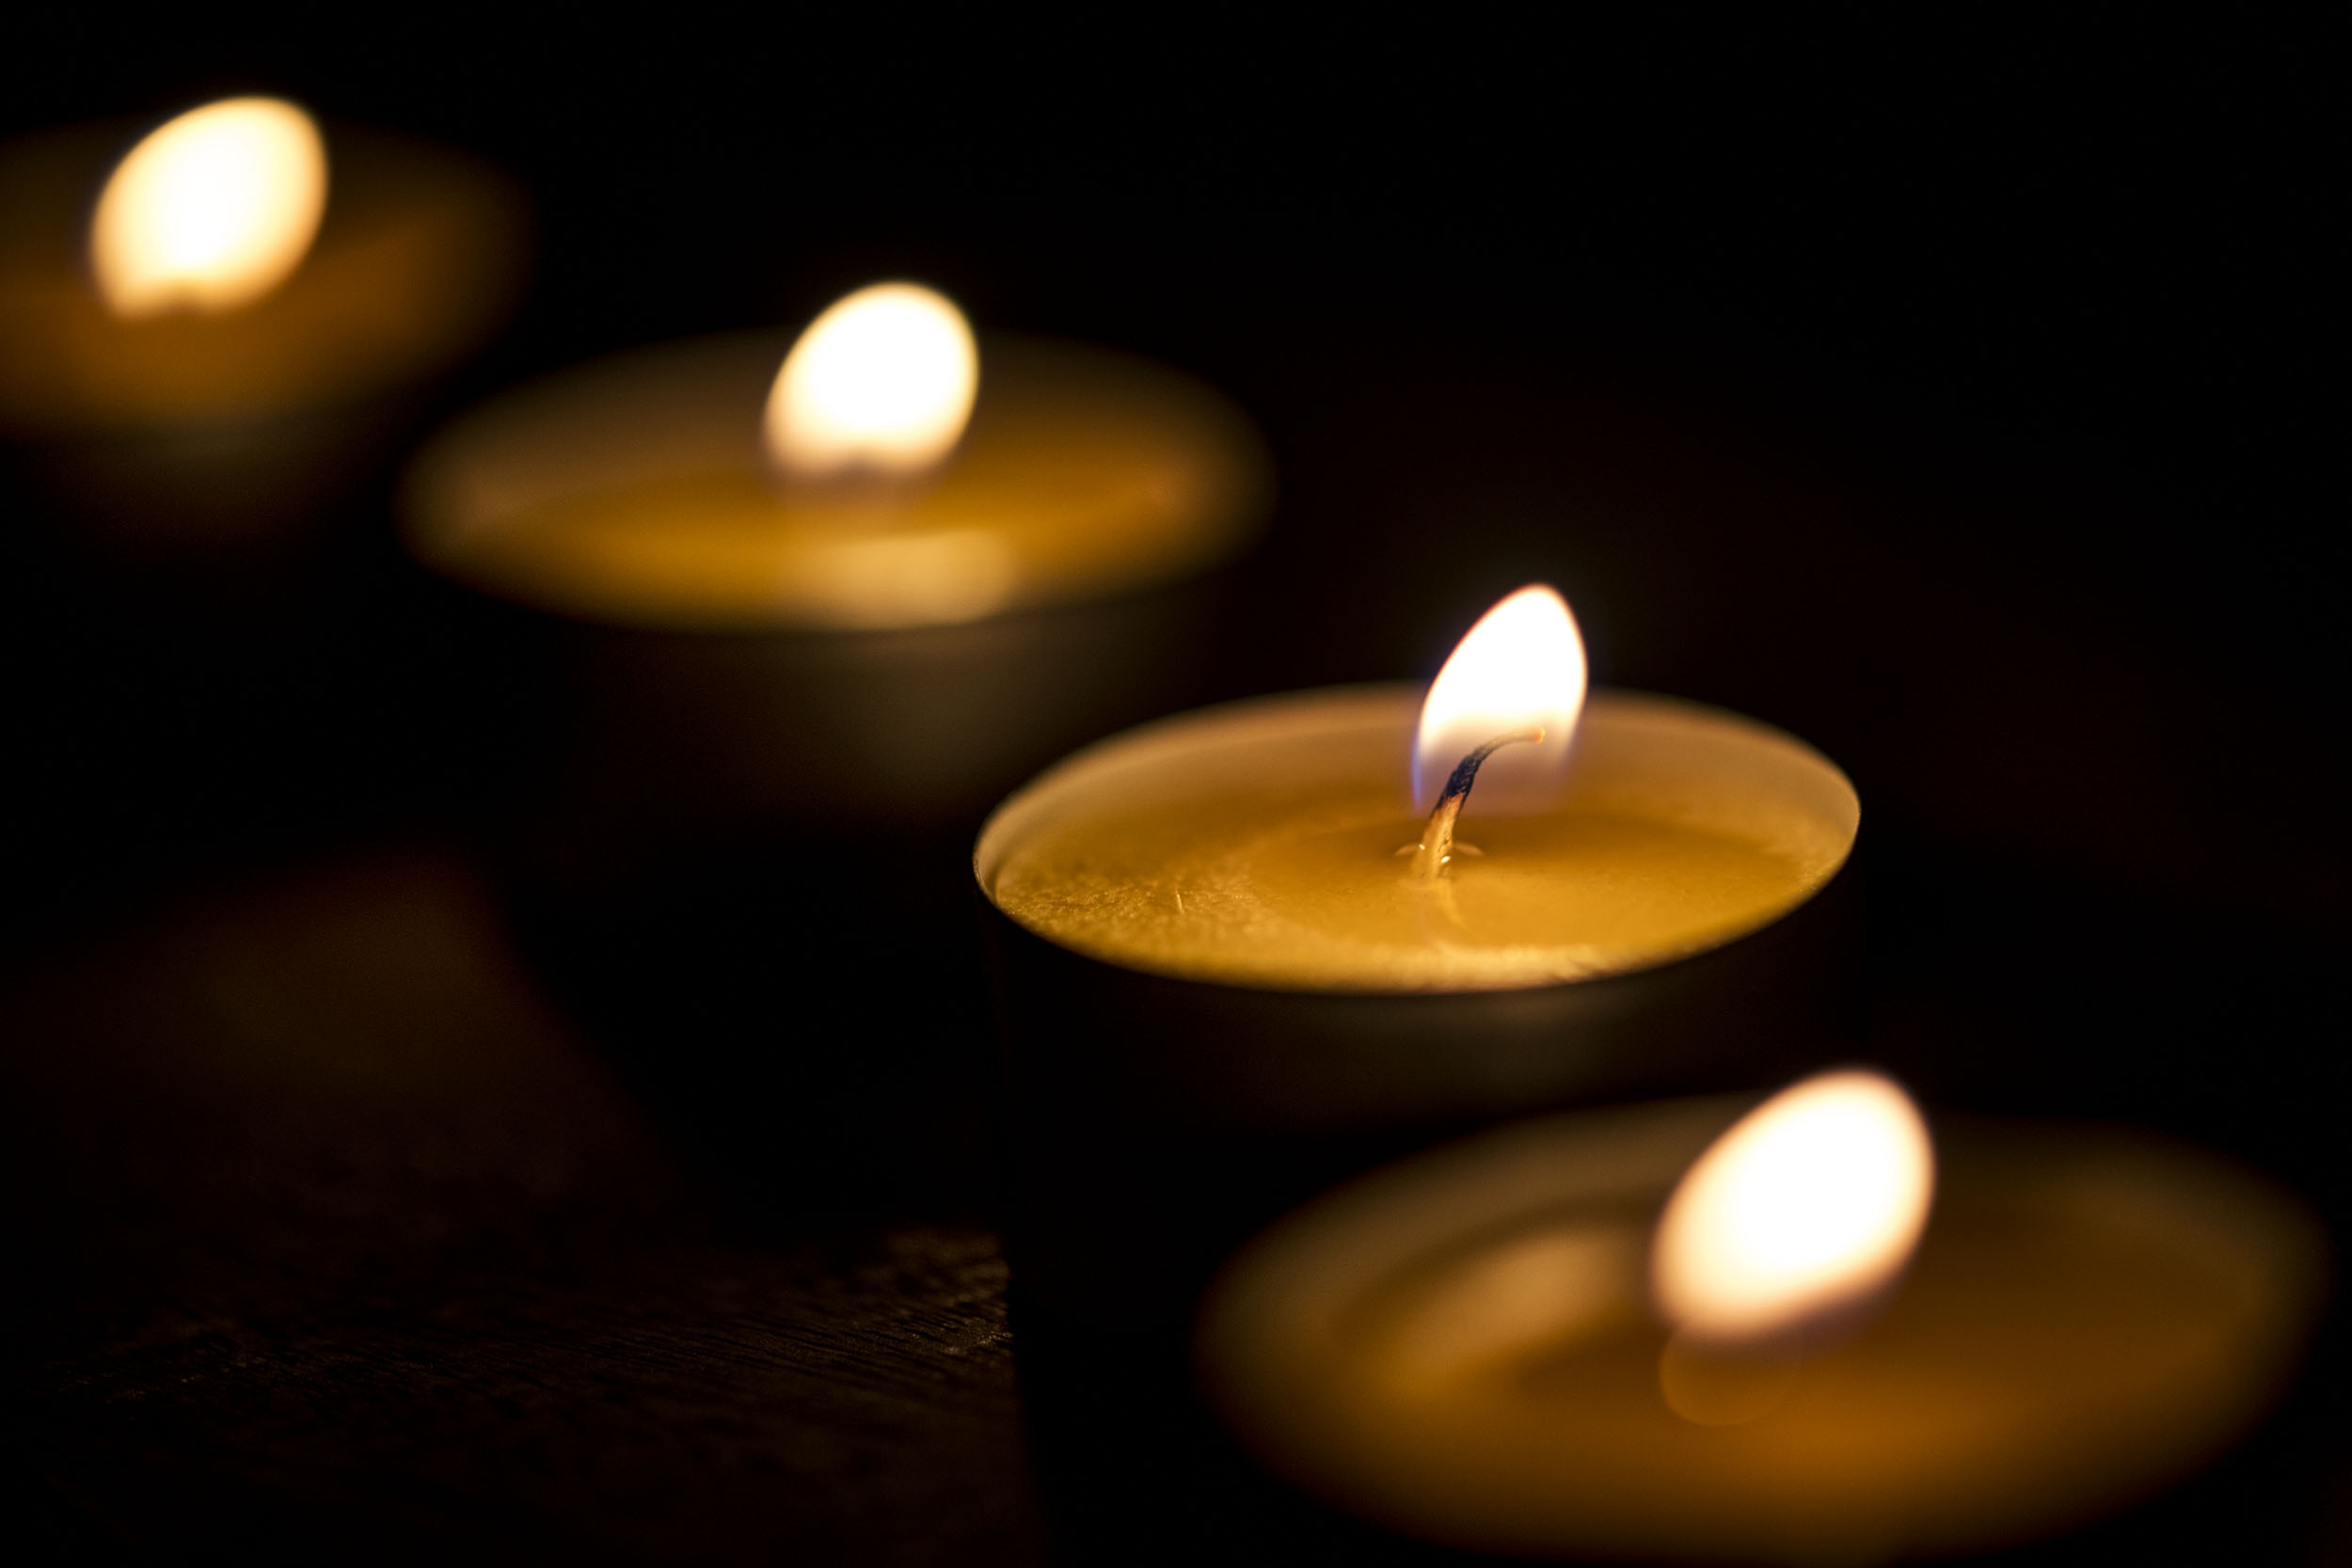 Can you use Crisco Fat to Make a Candle?